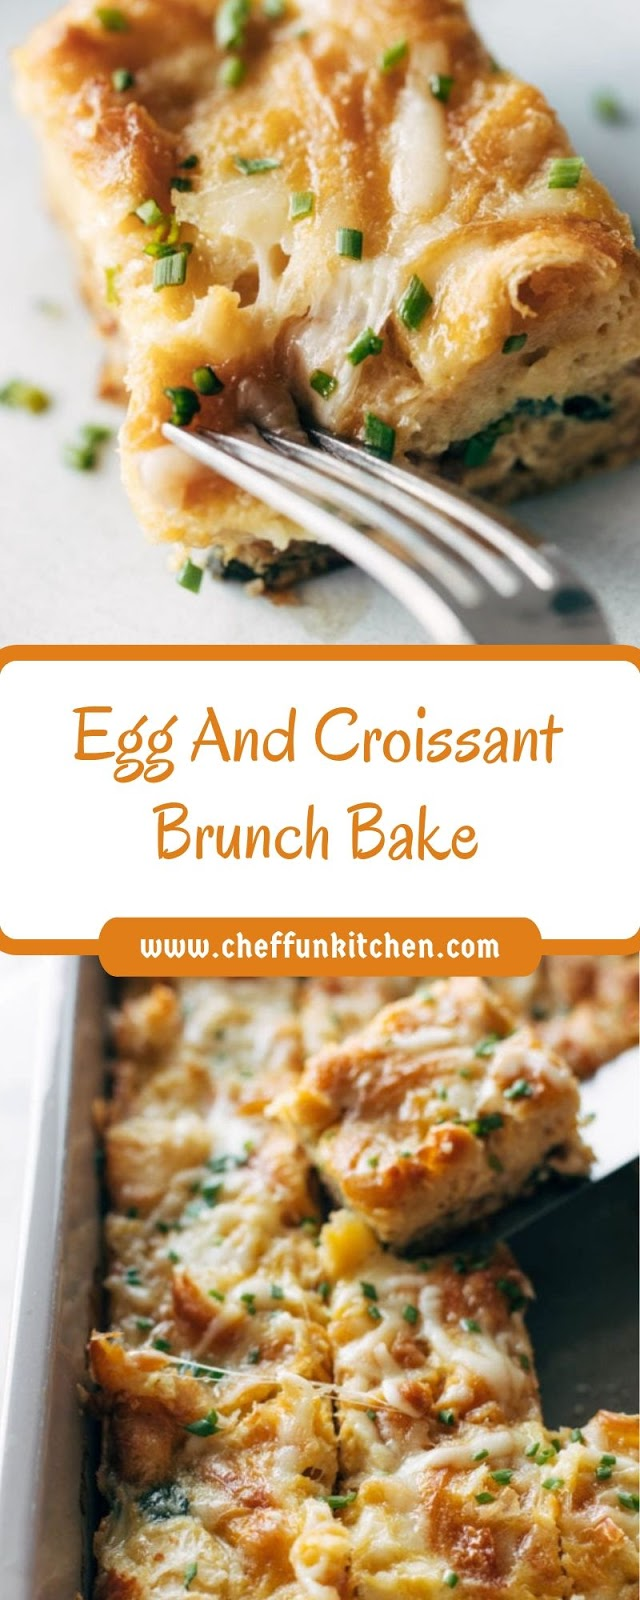 Egg And Croissant Brunch Bake